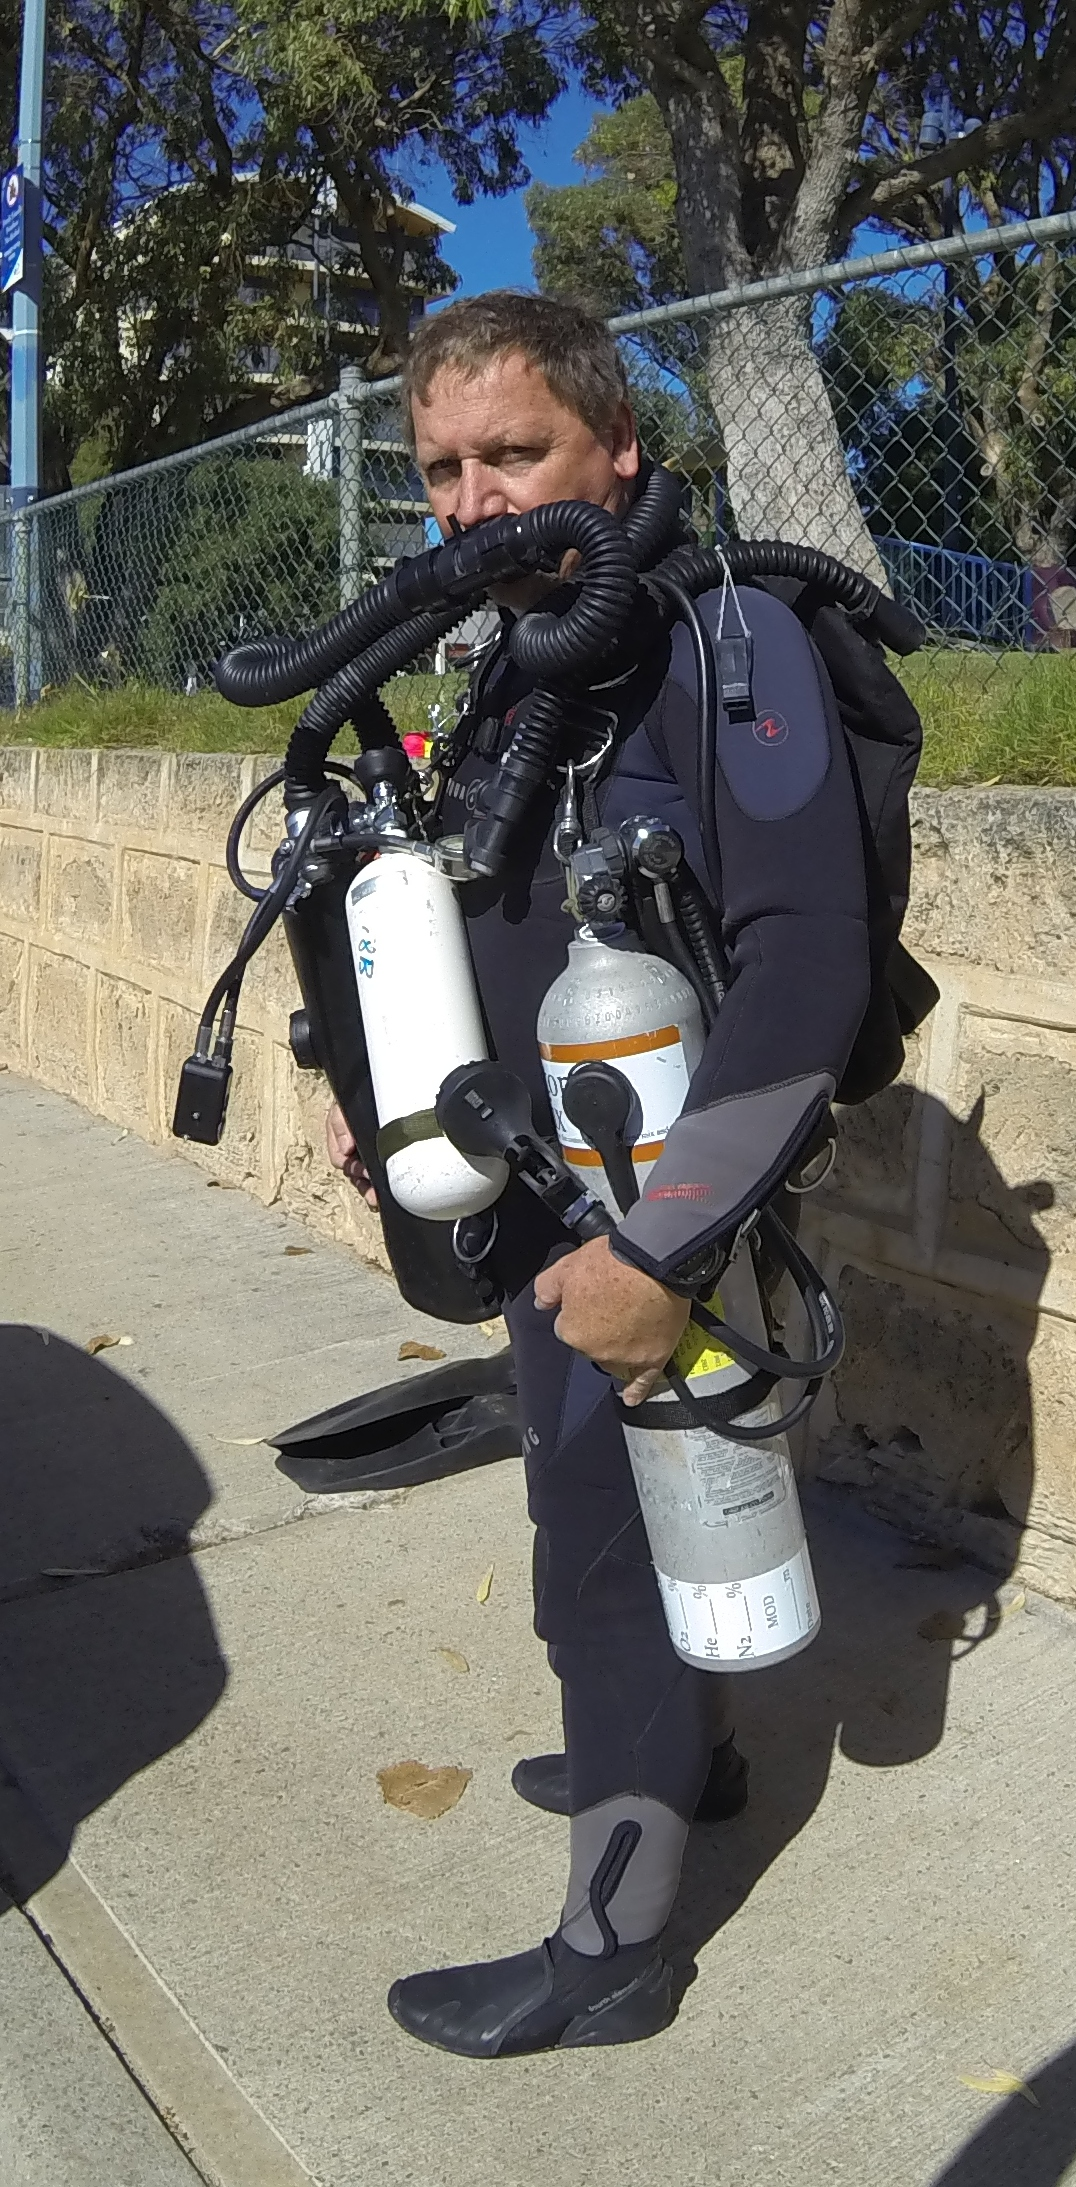 Dive-Systems-Proteus-P2-Sidemount-Rebreather-0671a.jpg